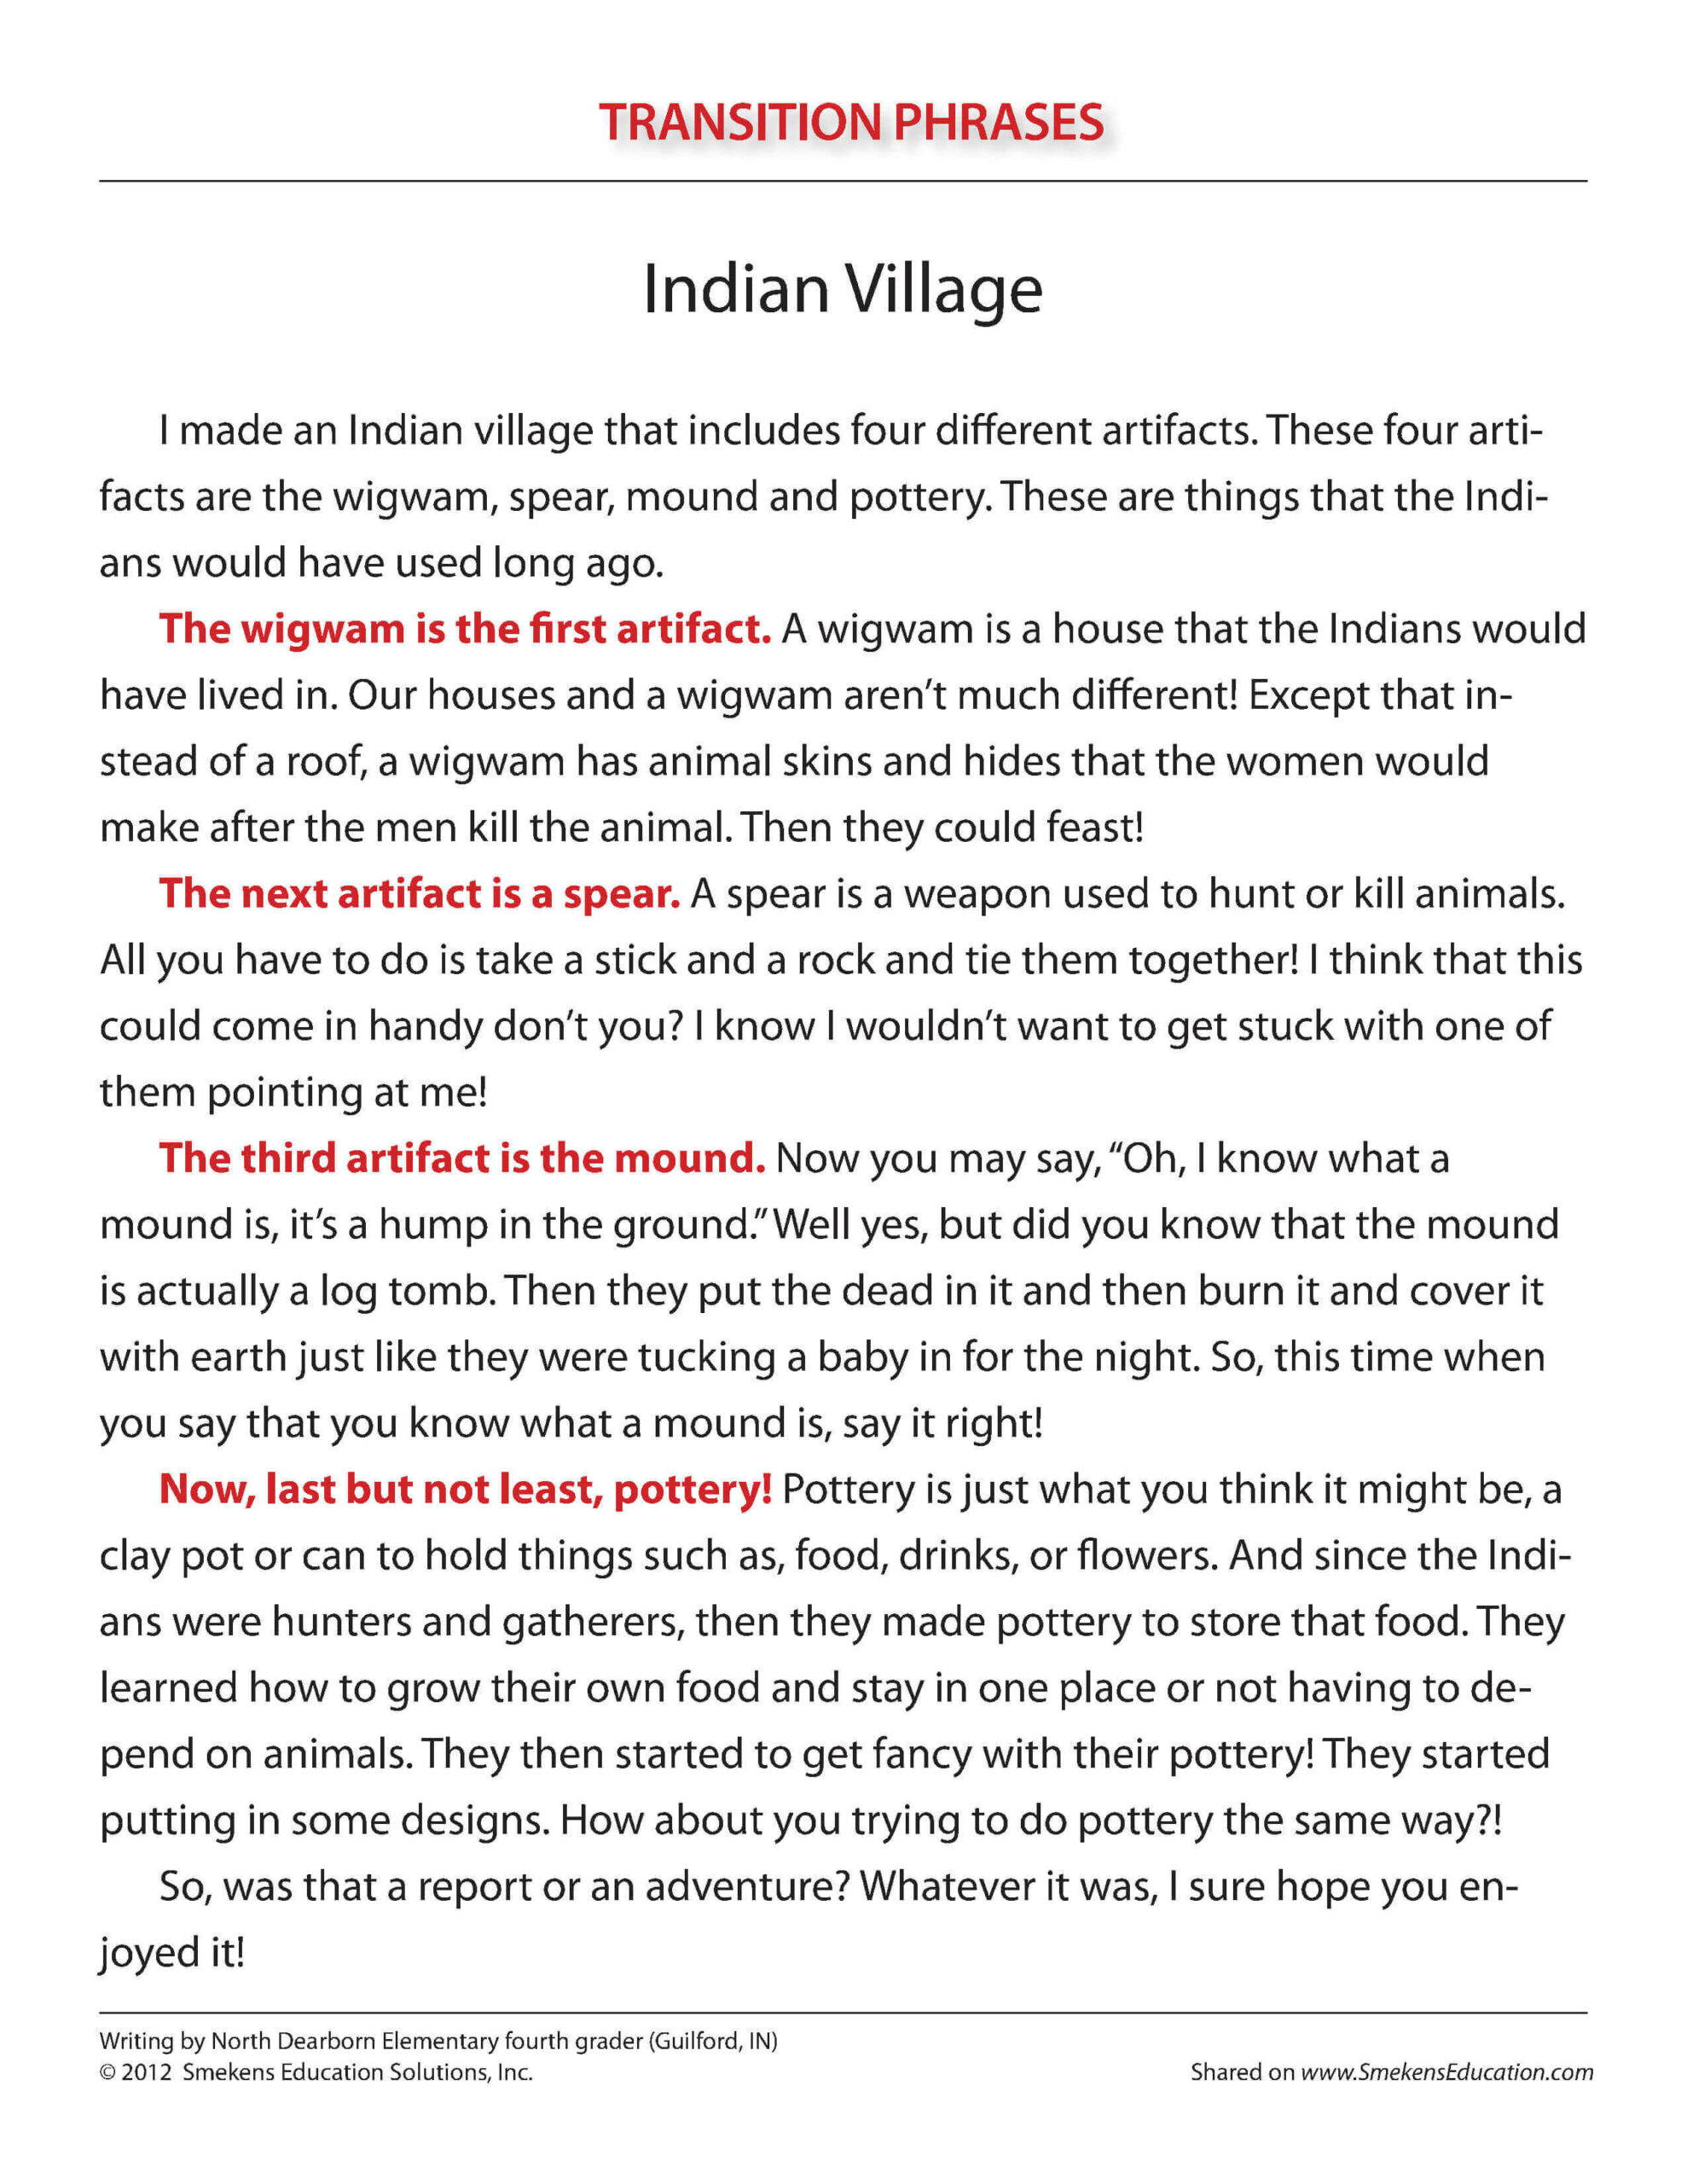 Transition Phrases Anchor Papers - Indian Village